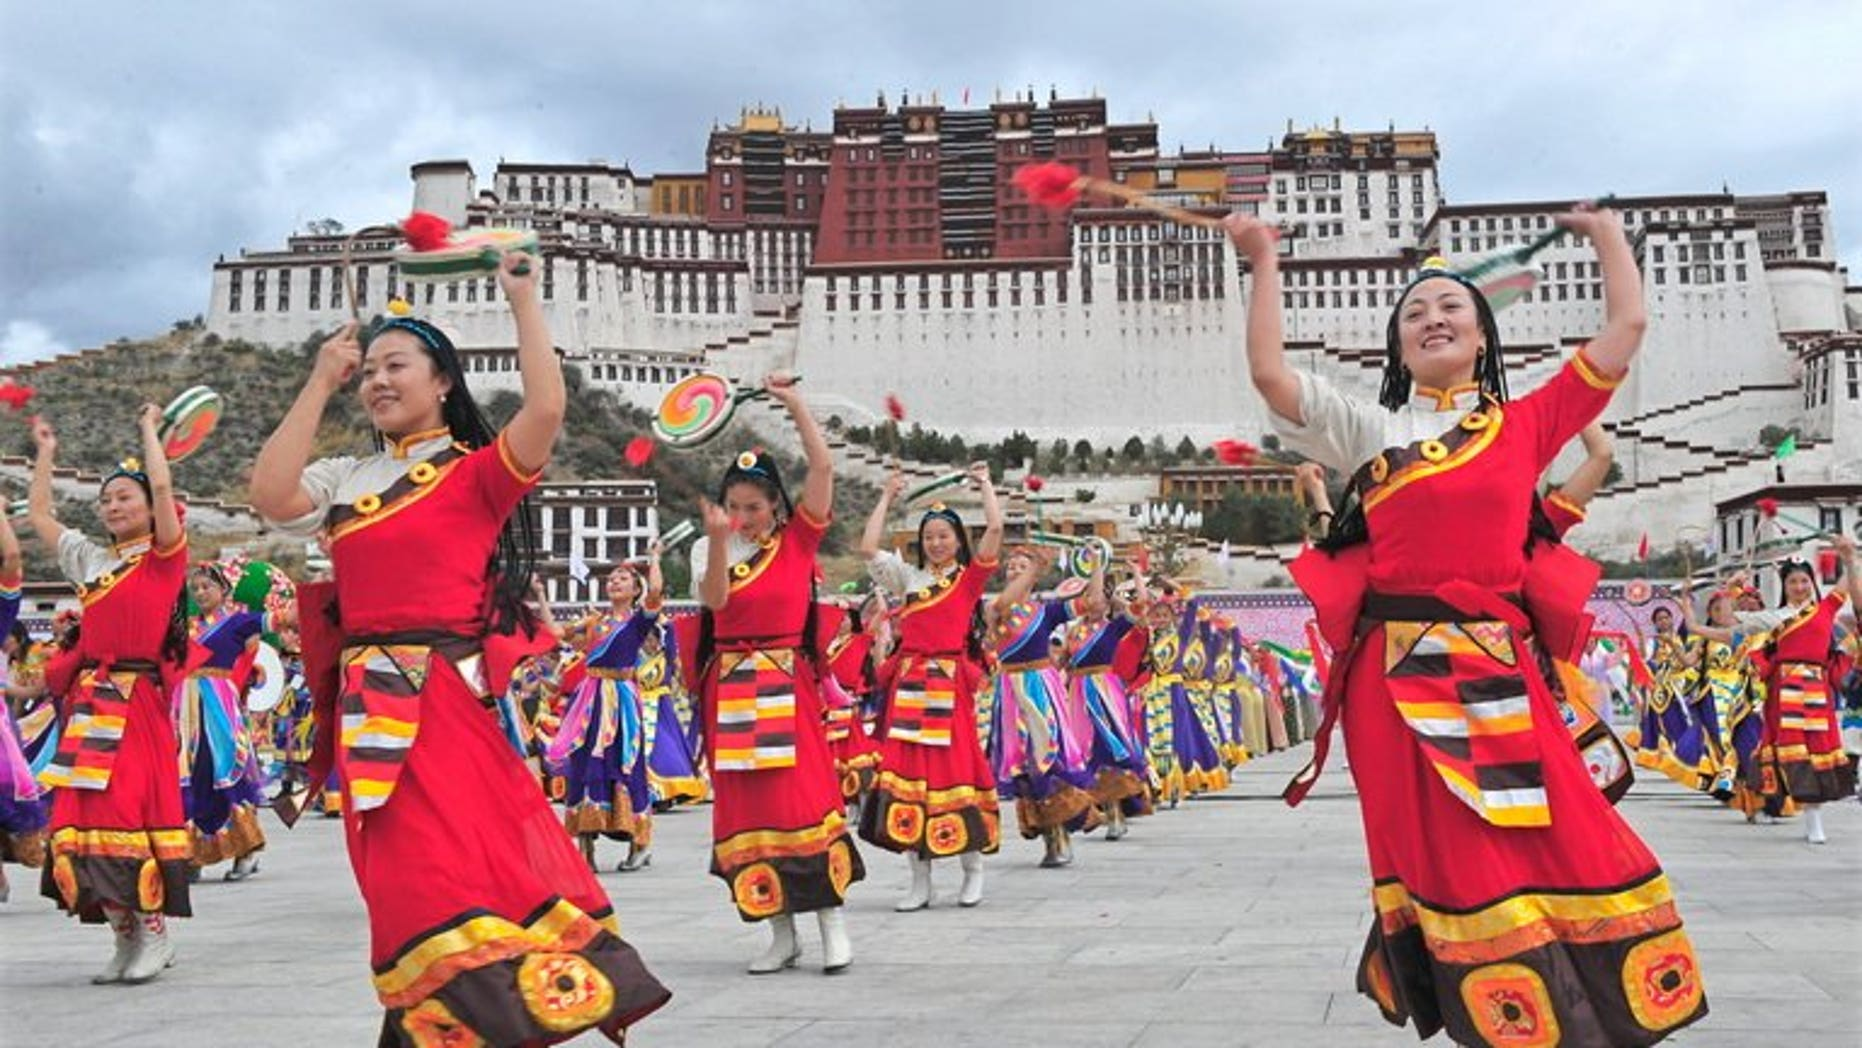 Tibetan performers dressed in traditional costume perform in Lhasa on June 21, 2008. The controversial renovation of the historic area around a key monastery in the Tibetan capital has been completed, Chinese state media said.